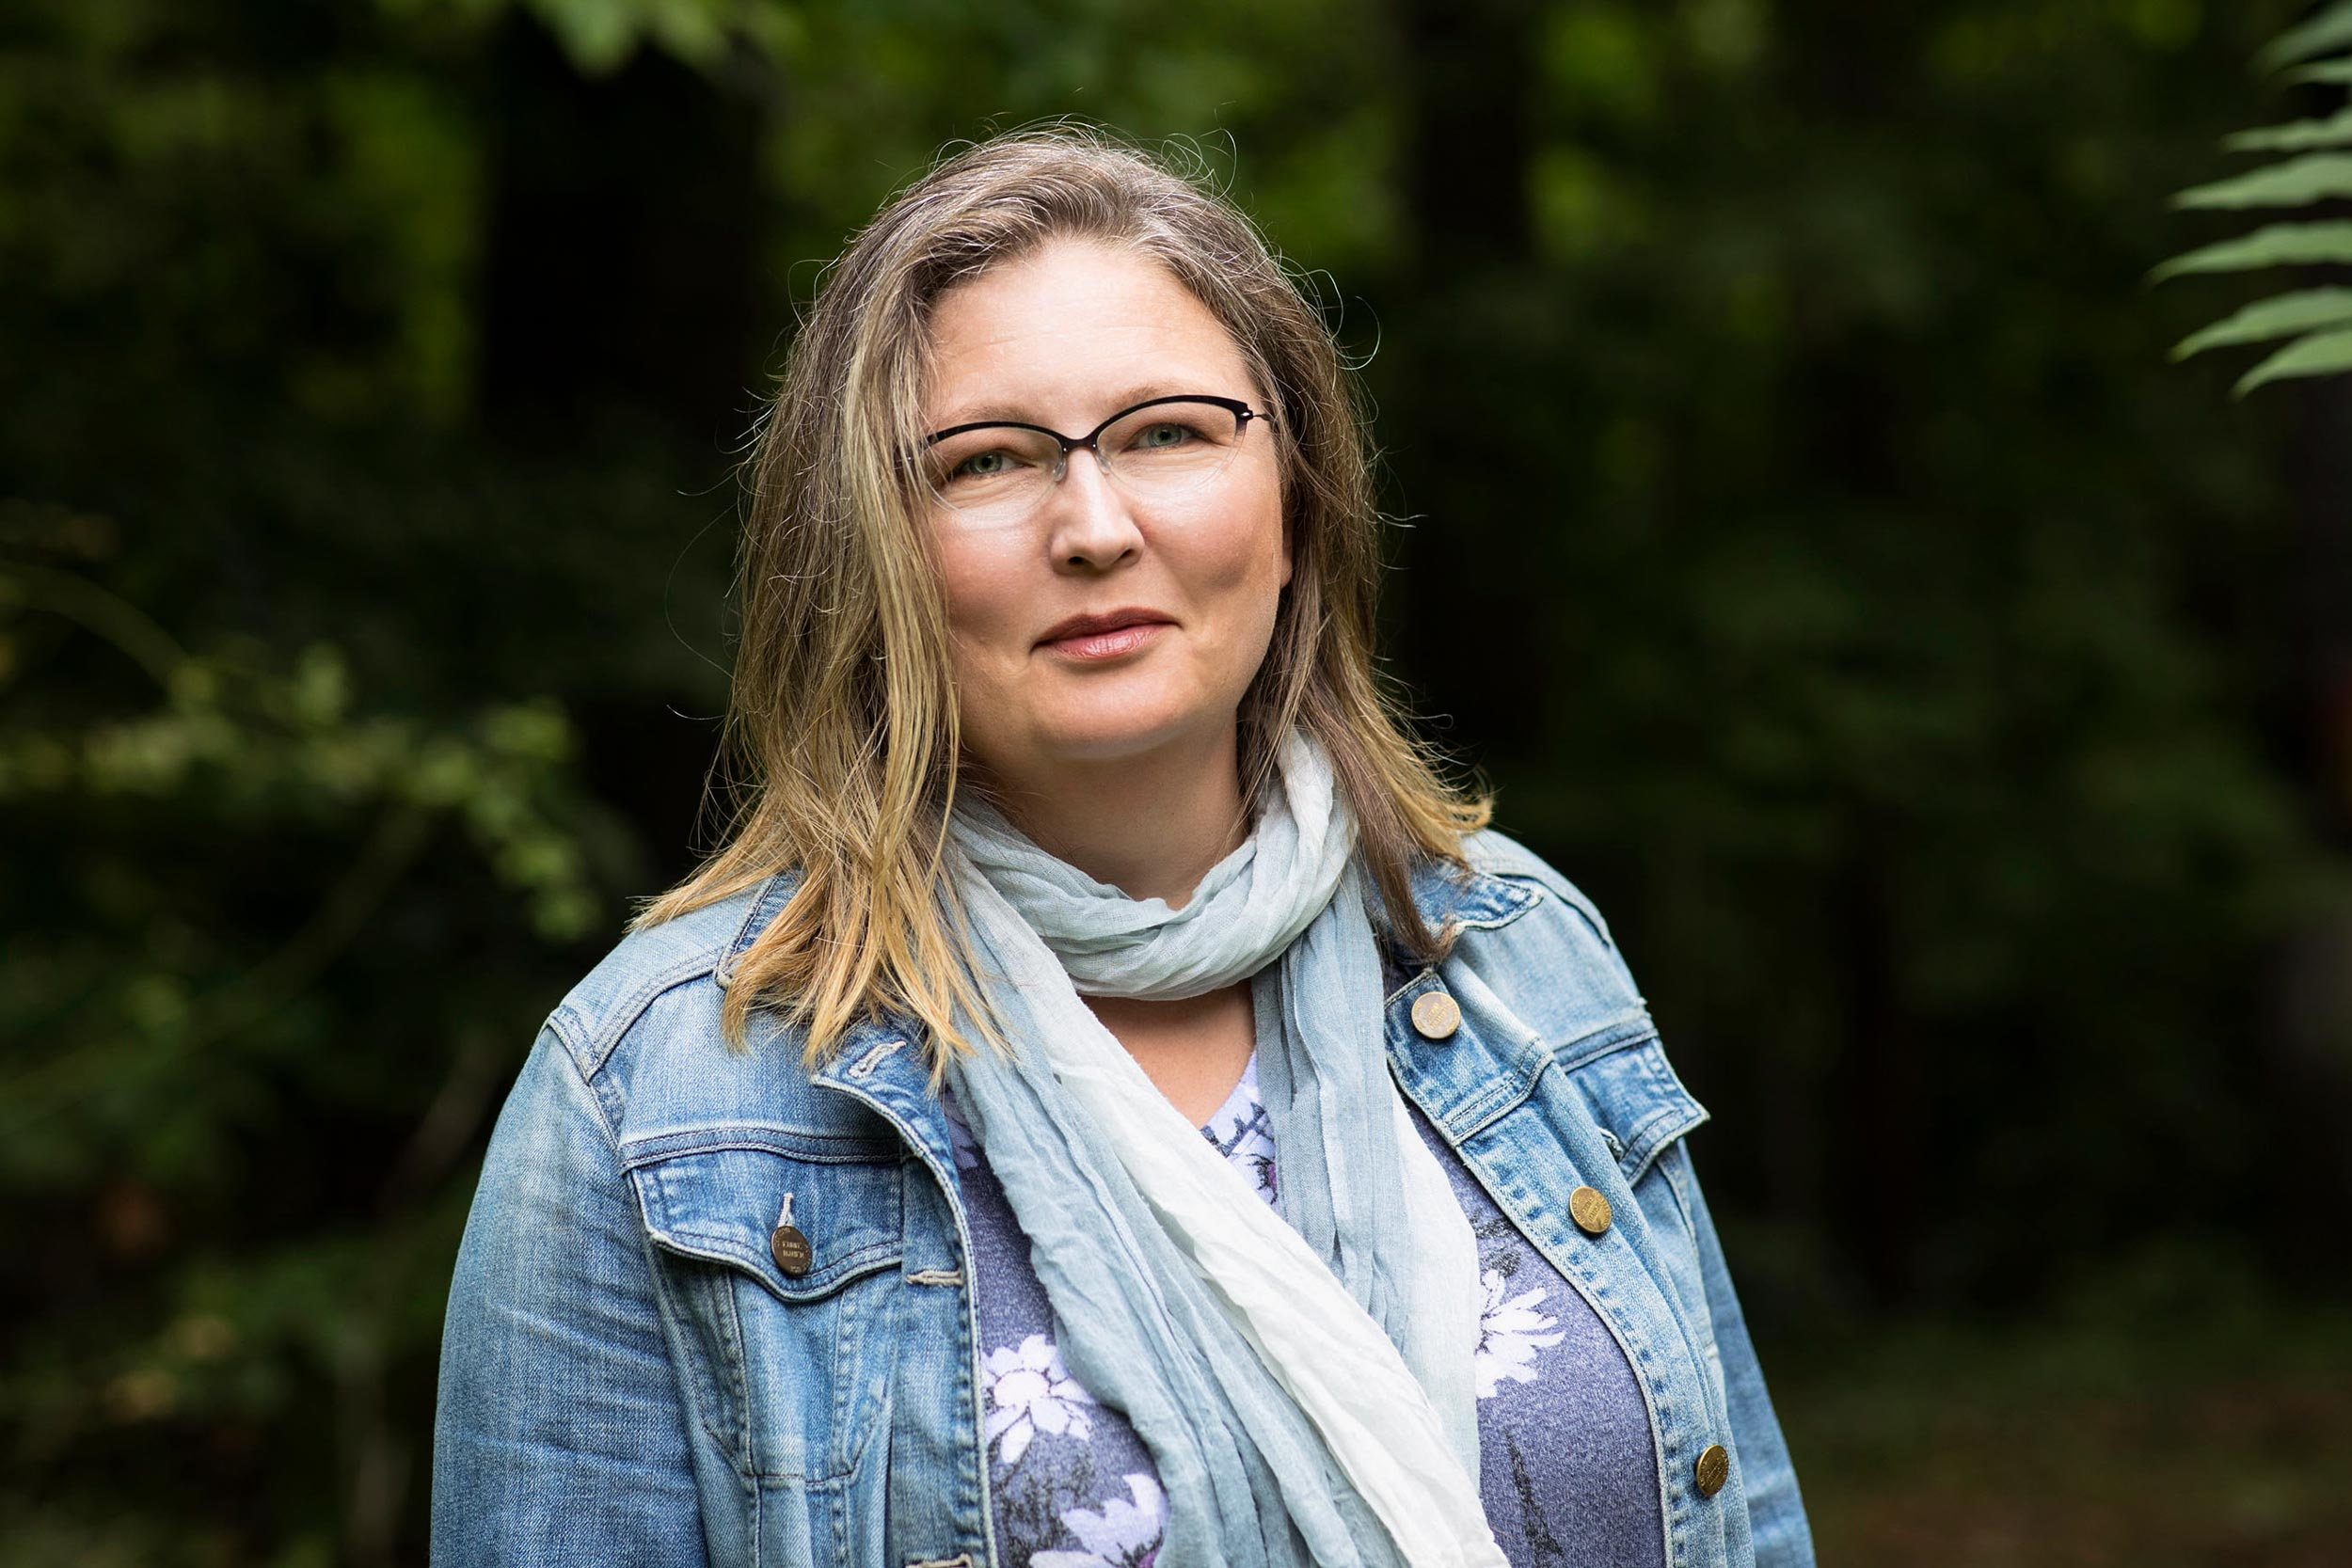 Astronomy professor Kelsey Johnson recently wrote a commentary on aliens for Scientific American.